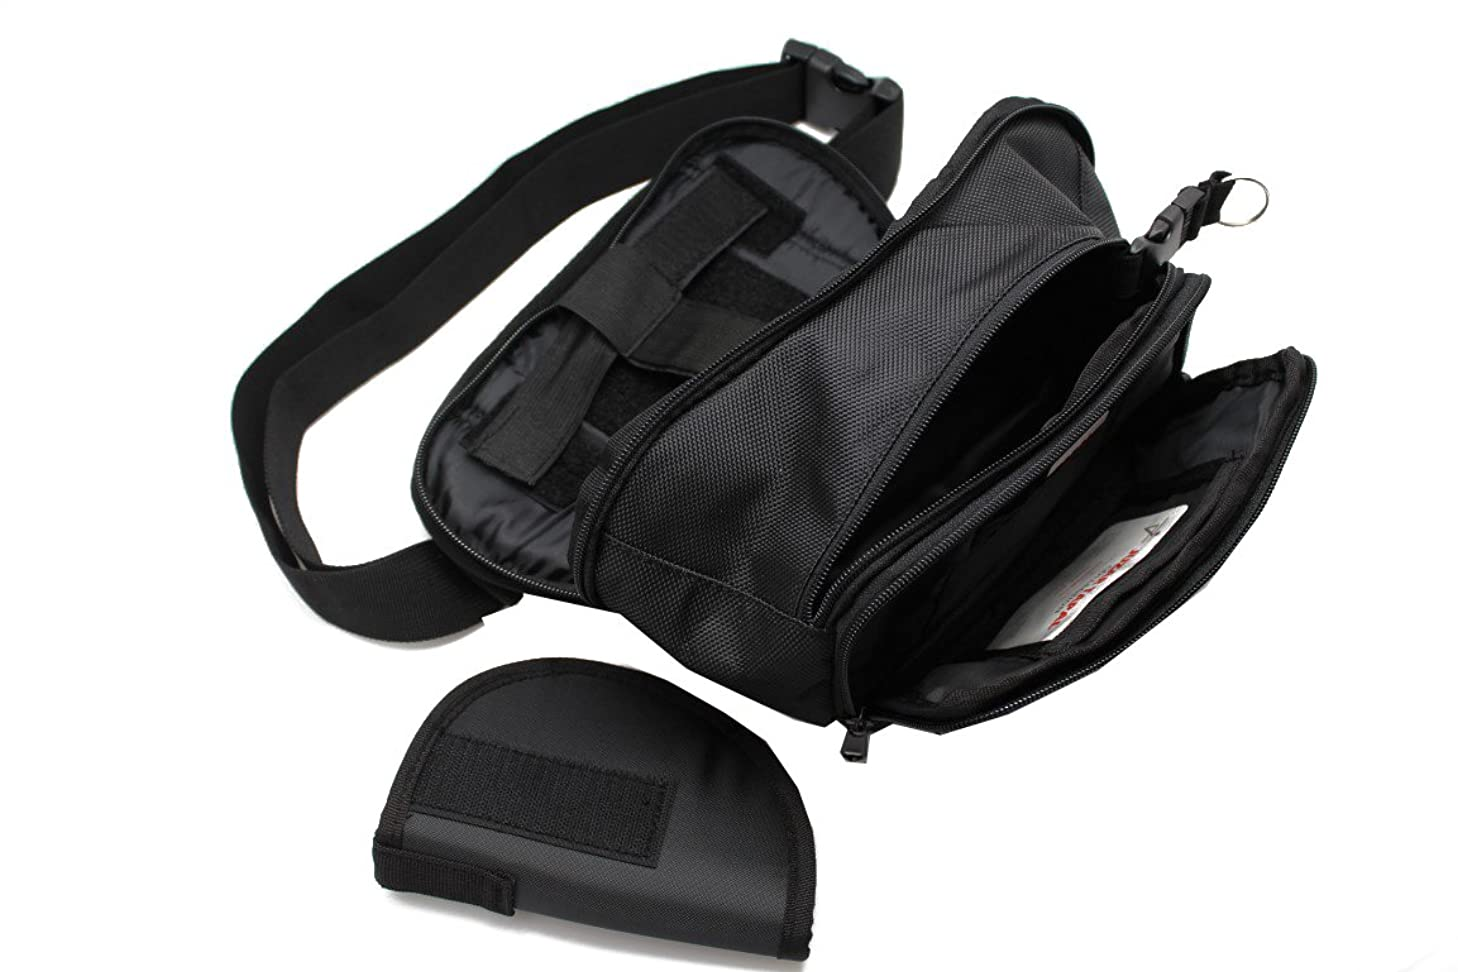 Juzar Tapal Collection Tactical Pistol Concealment Fanny Pack CCW Concealed Carry Gun Pouch